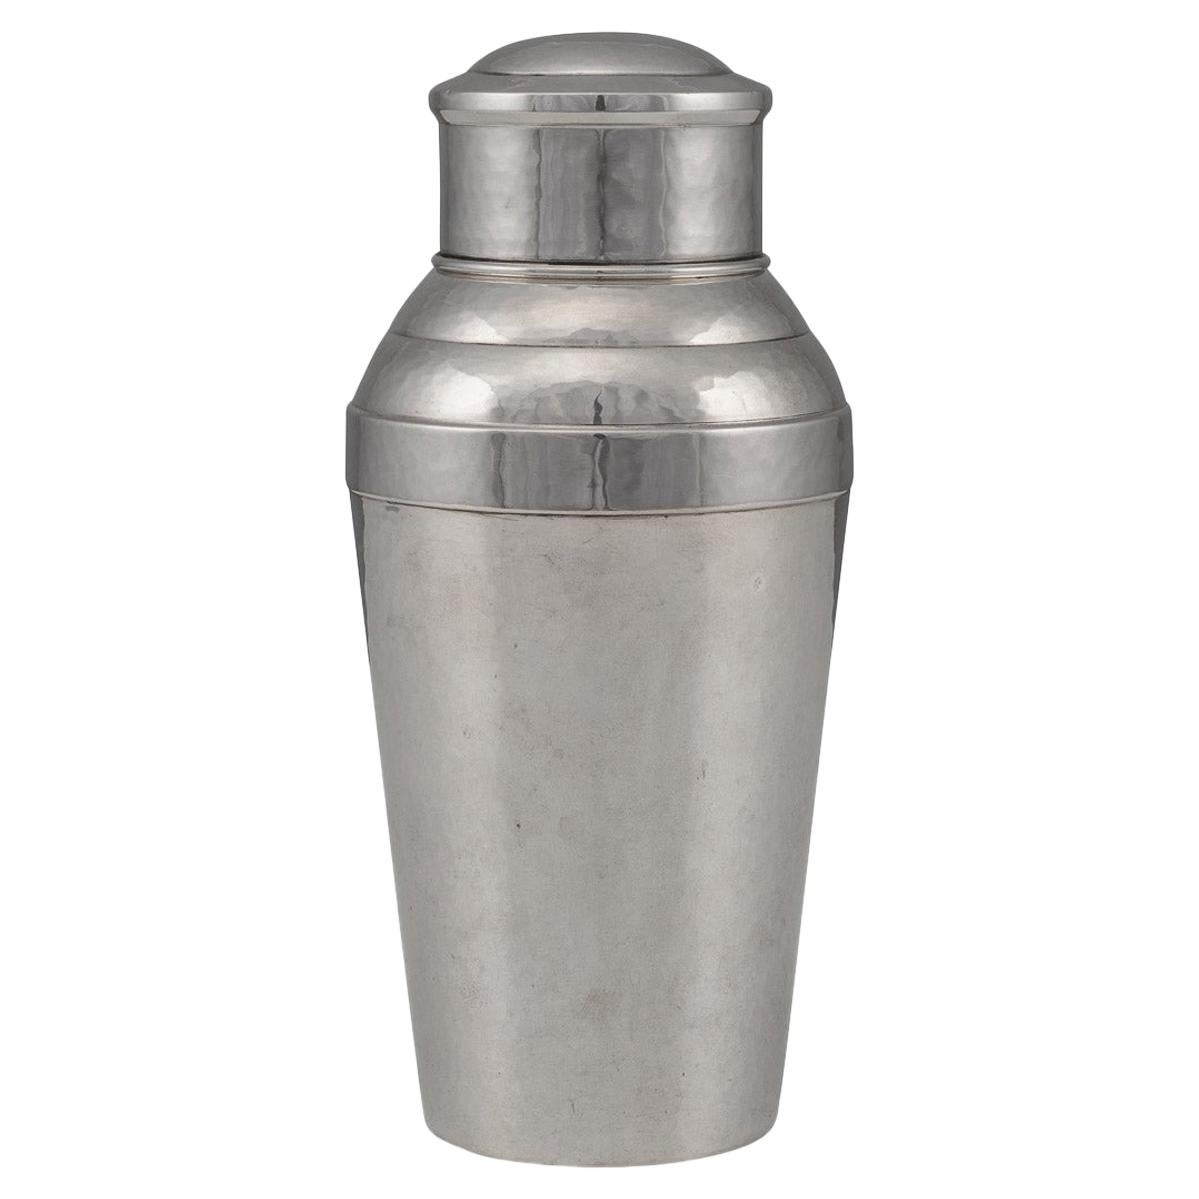 20th Century German Art Deco Solid Silver Cocktail Shaker, c.1930